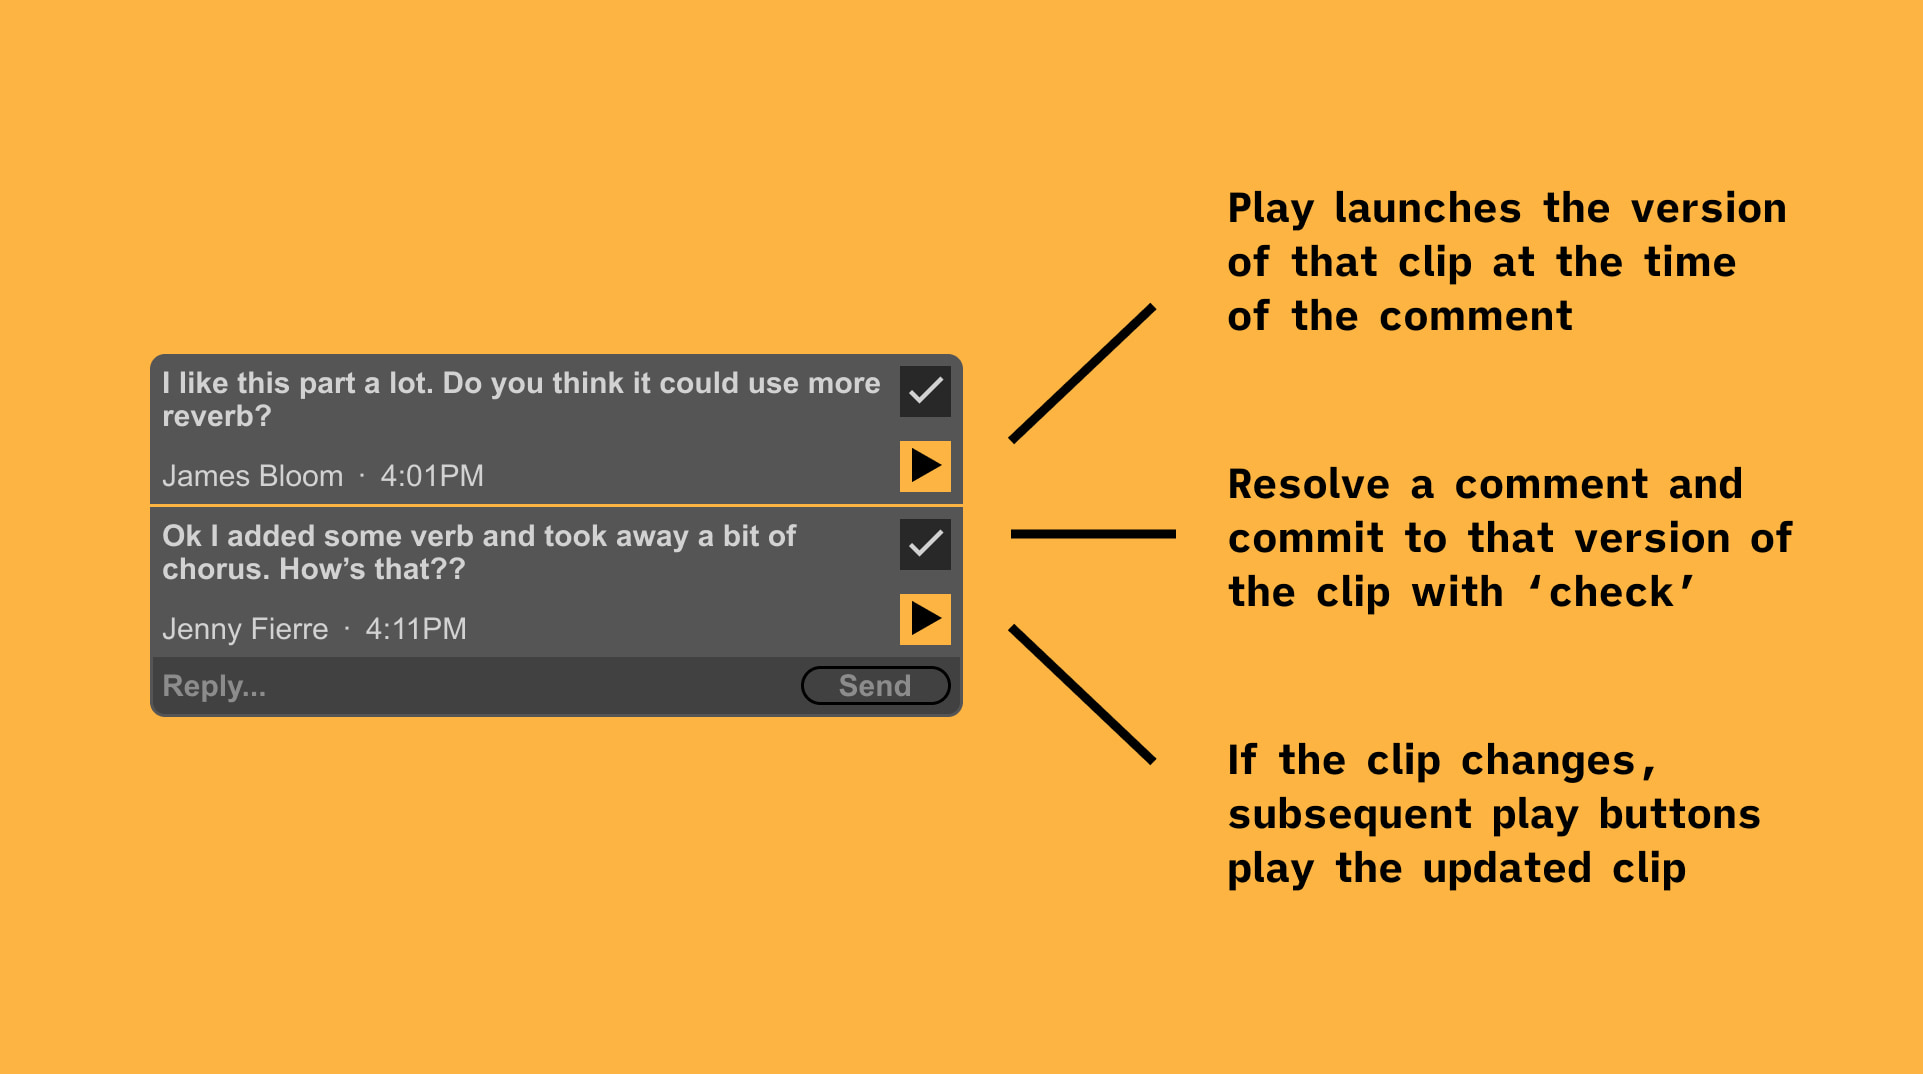 explaining how comment clips work. The play button launches that version of a clip, if a change is made each new comment will reference the new changes. When a comment is resolved by hitting 'check' it commits that version of the clip